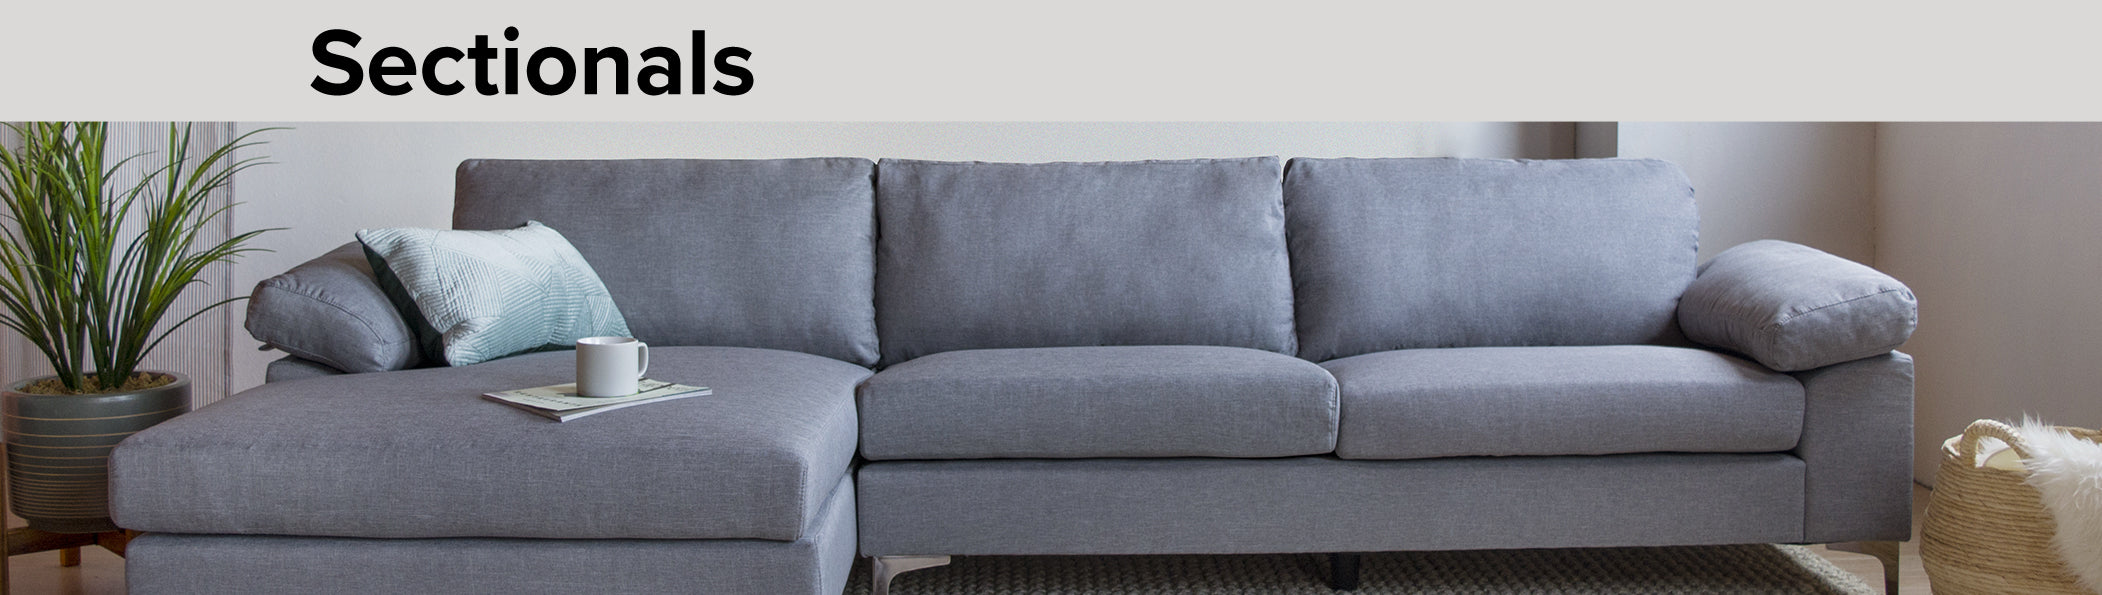 Cheap sectional sofas online 50 modern styles to browse sofamania page 2